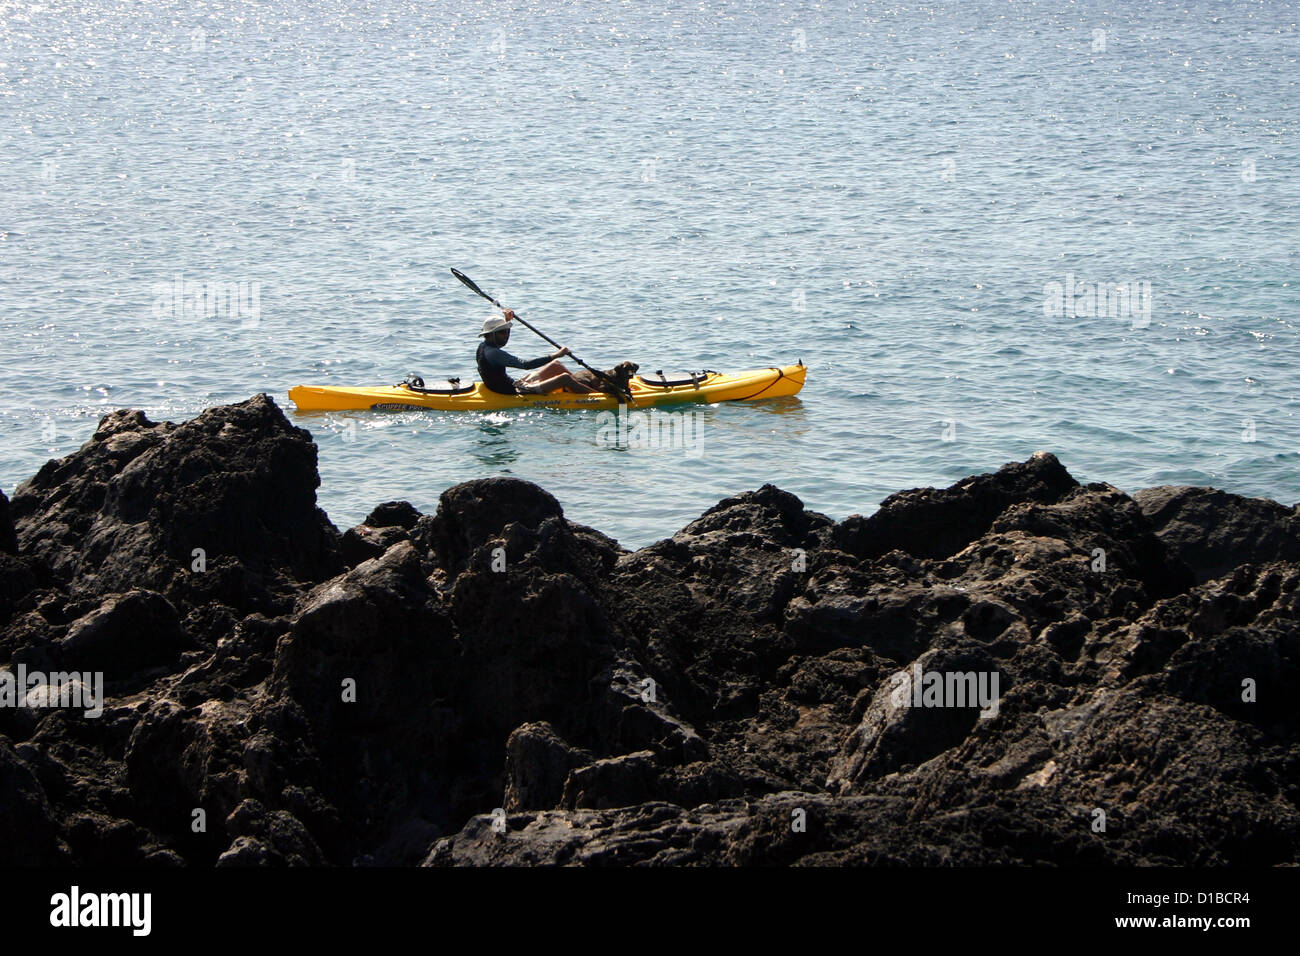 Lone person paddling in kayak off rocky coast of Hawaii, USA Stock Photo